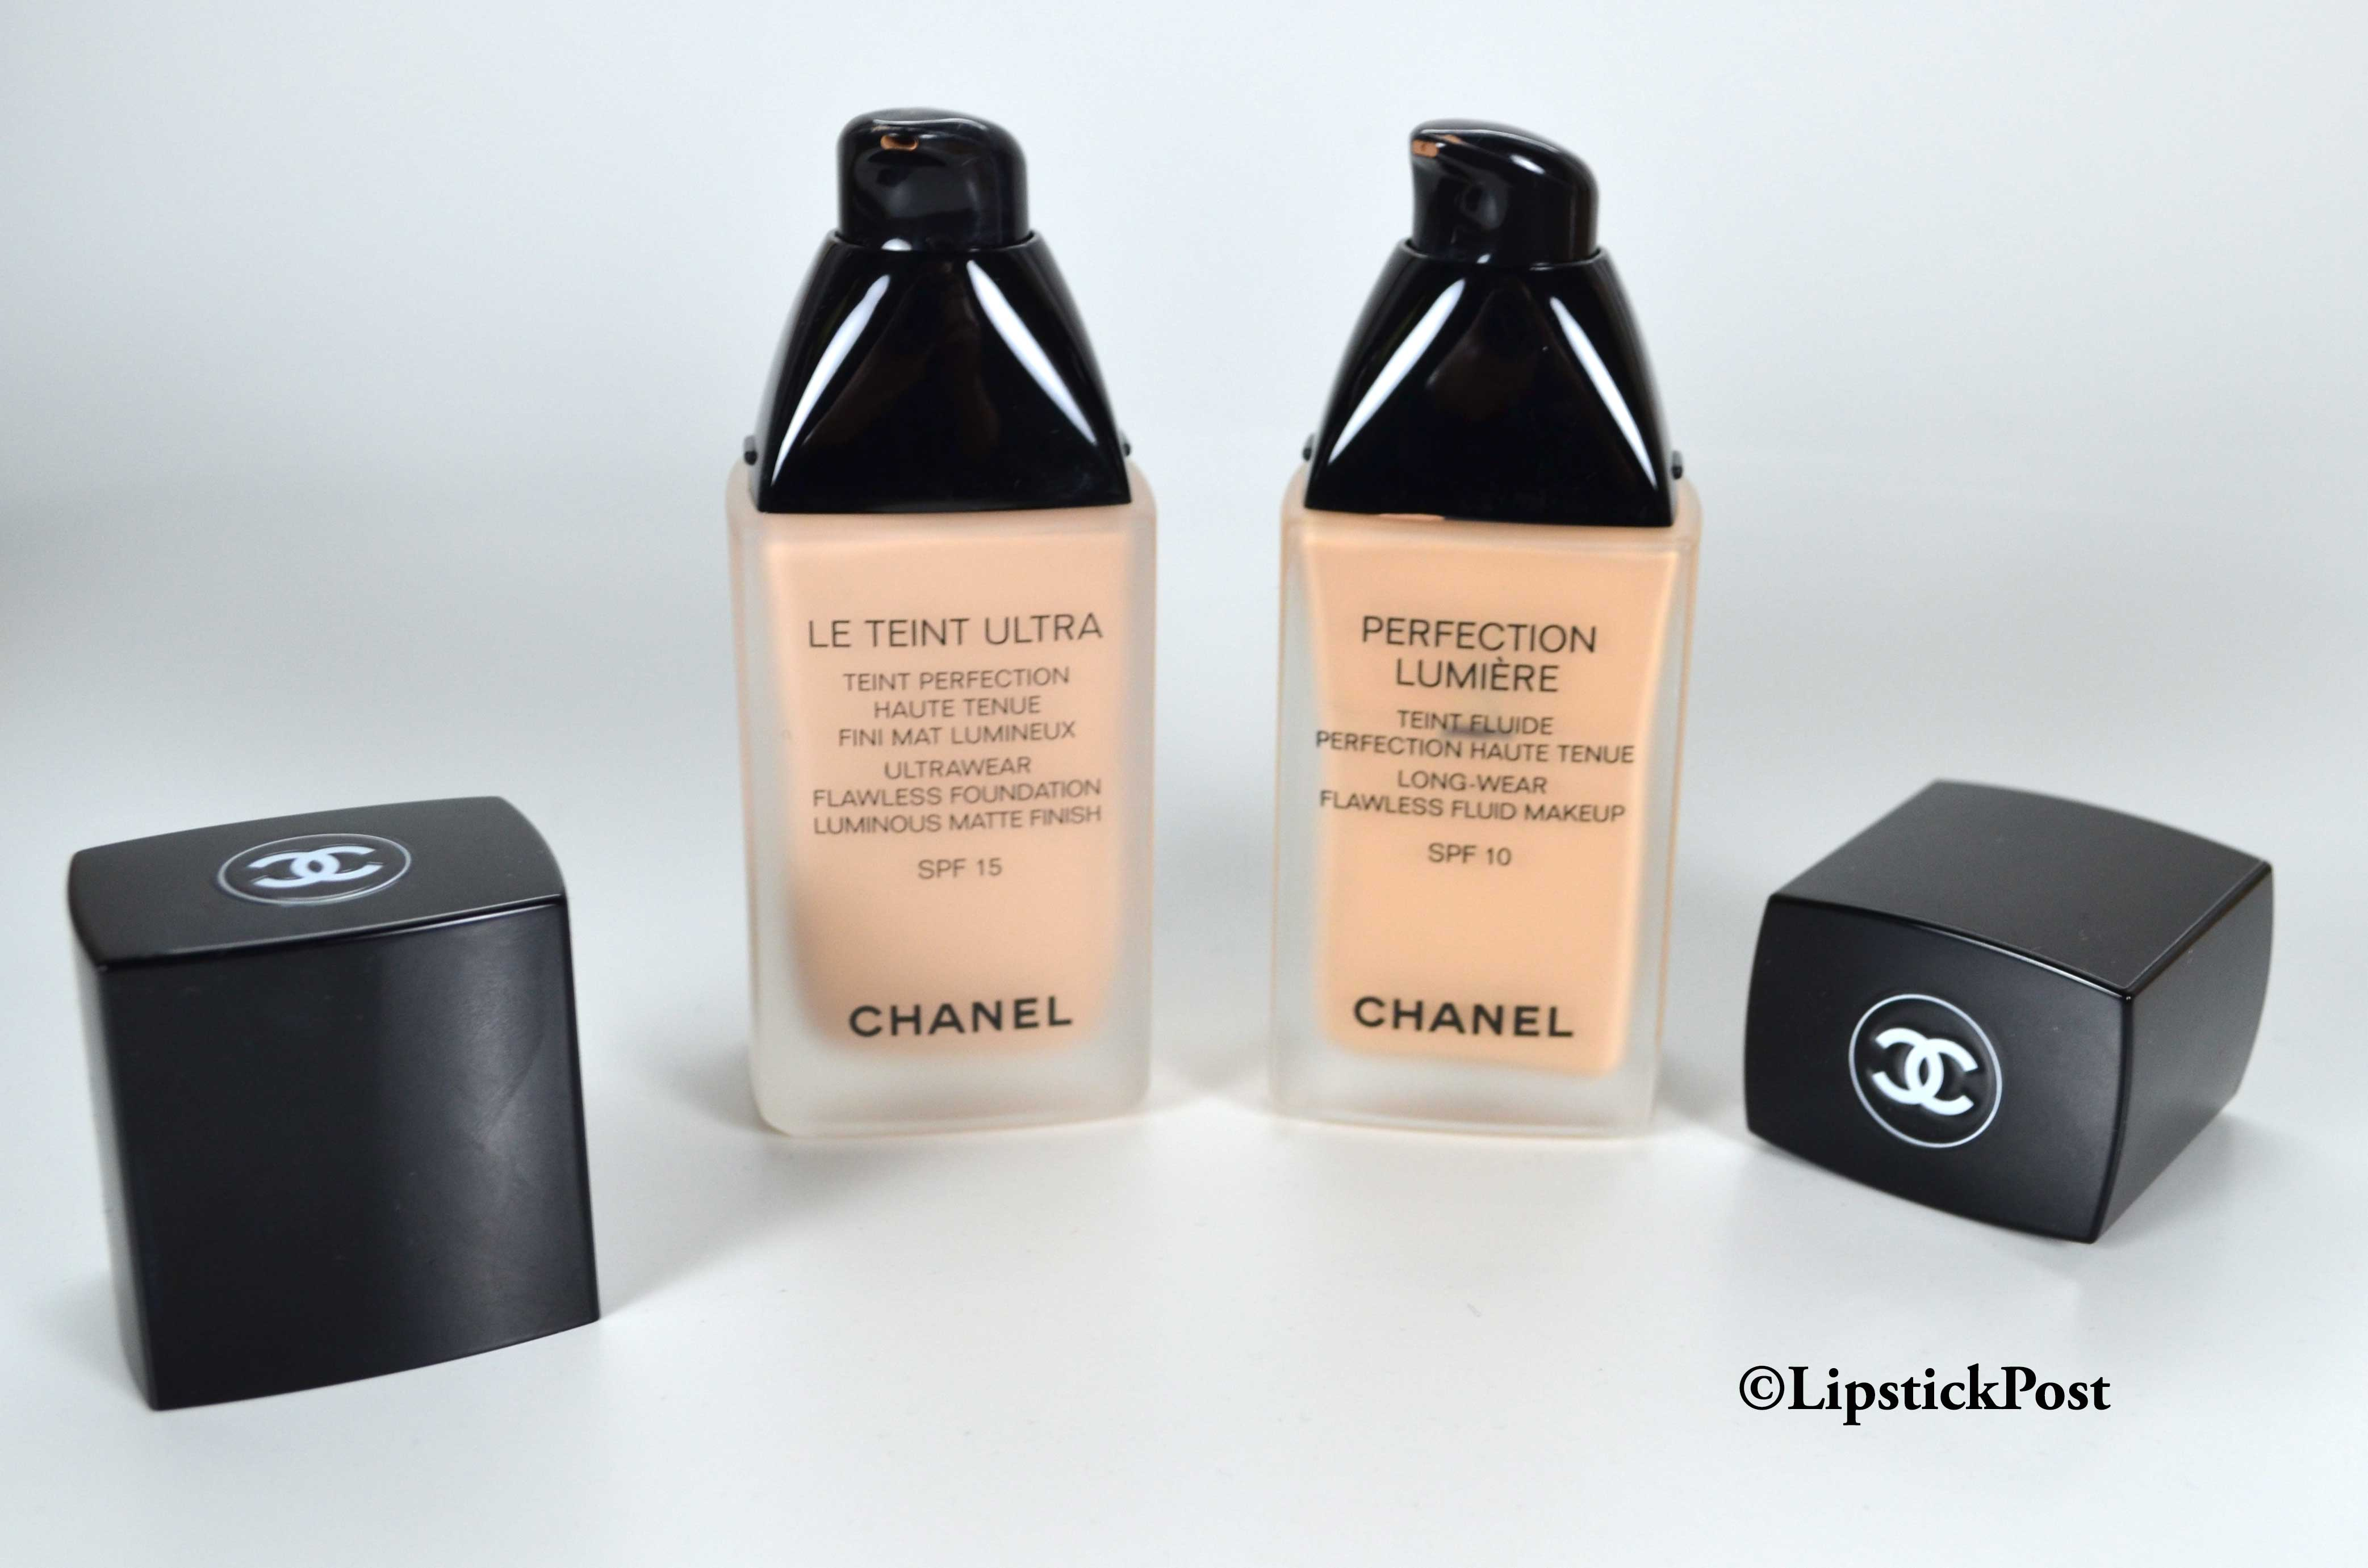 d3a394dc57 Chanel-Le-Teint-Ultra-vs-Perfection-Lumiere - LipstickPost